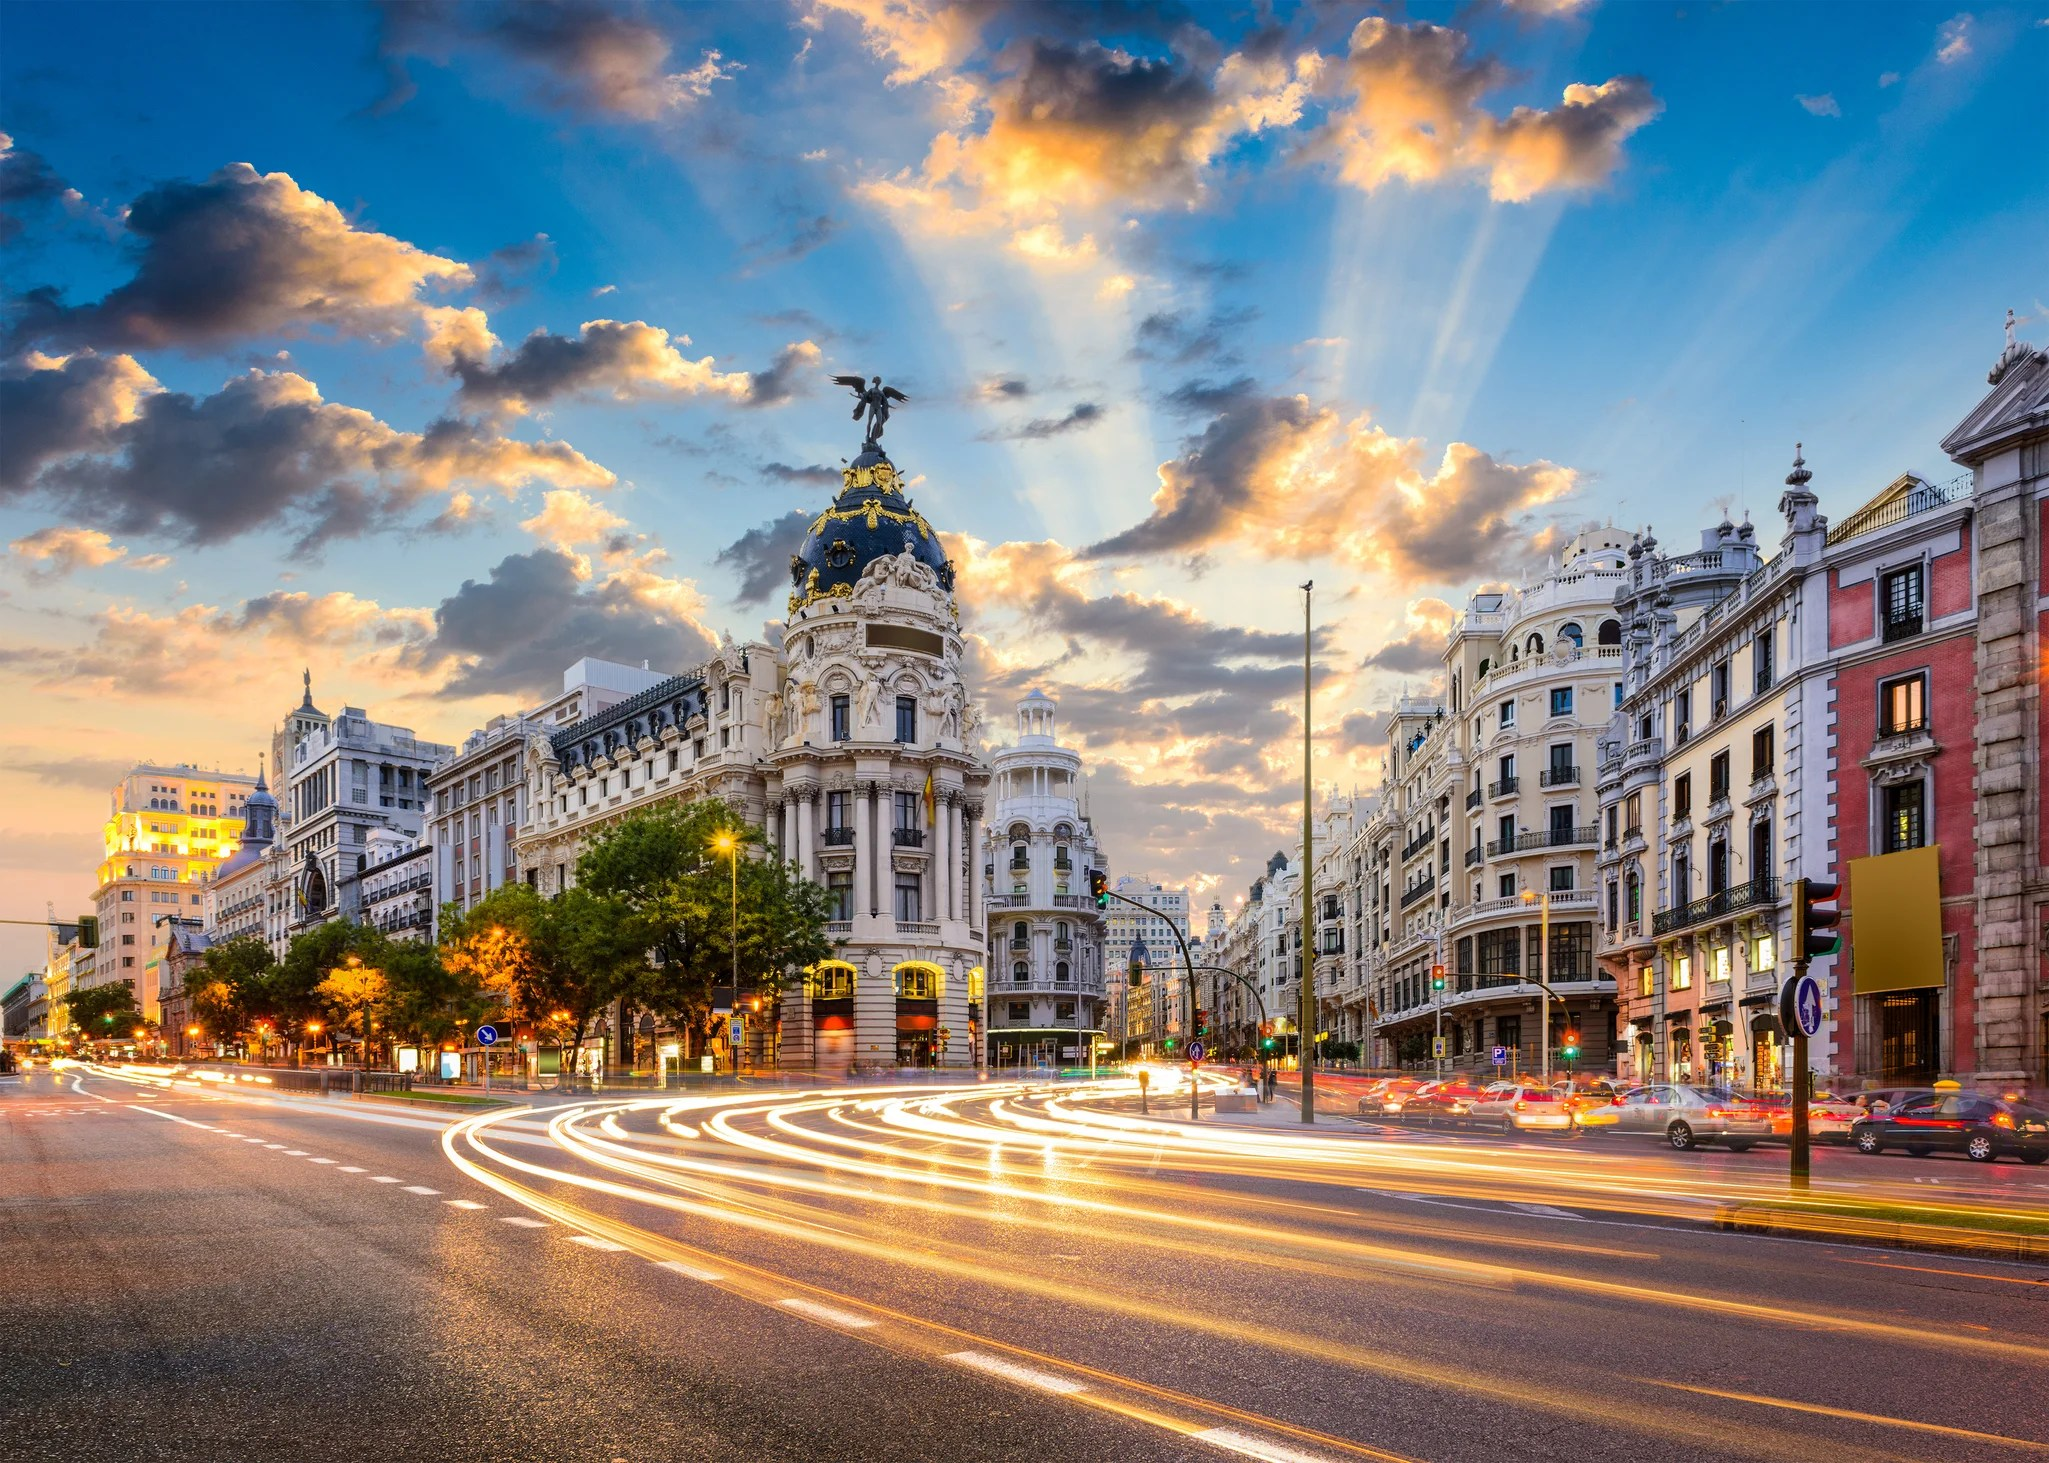 Flights From Across the US to Spain Have Dropped to $269 Round-Trip